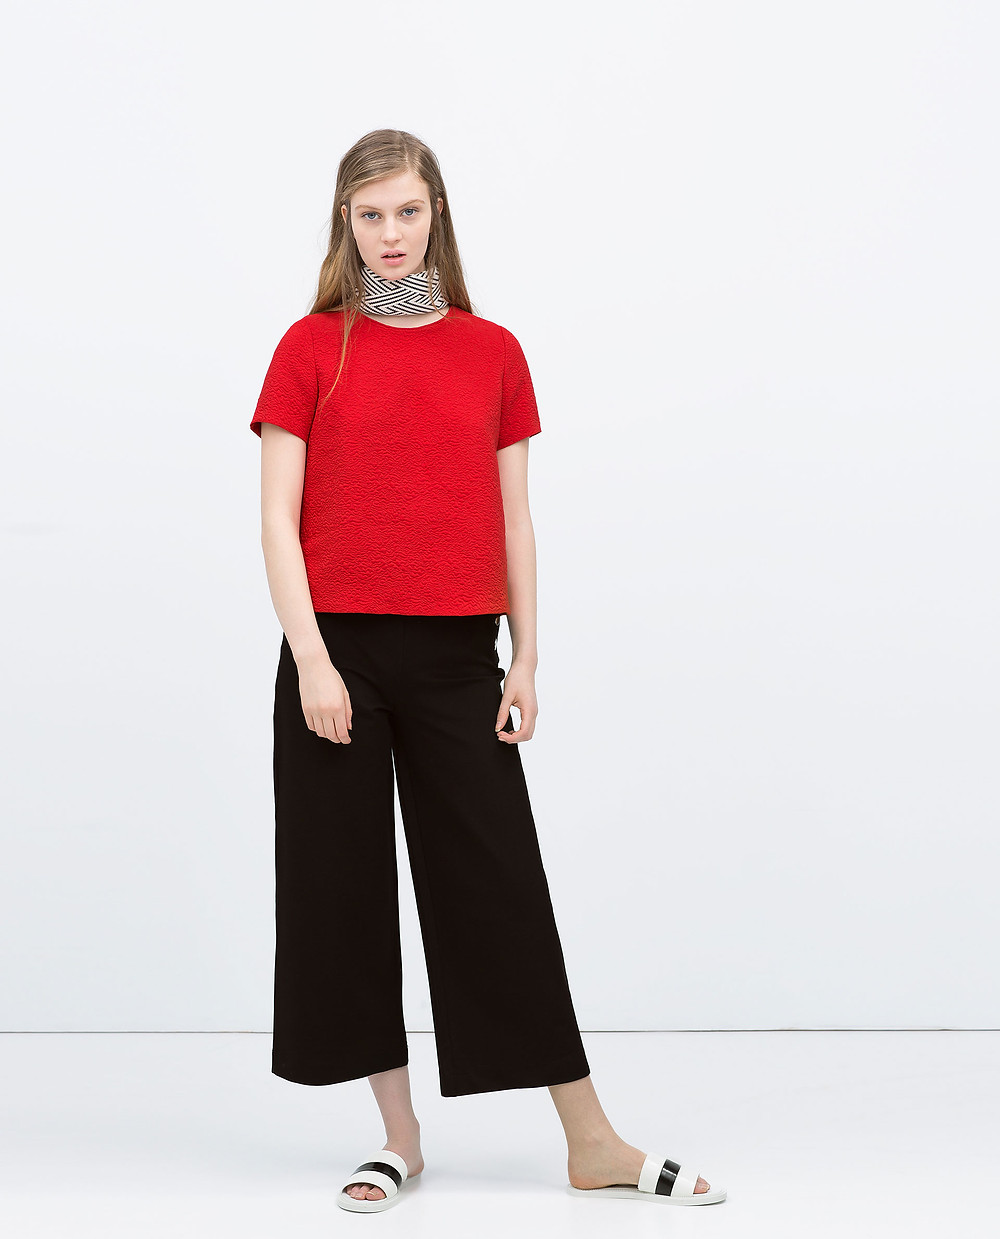 ZARA Top 599.00 mxn.jpg